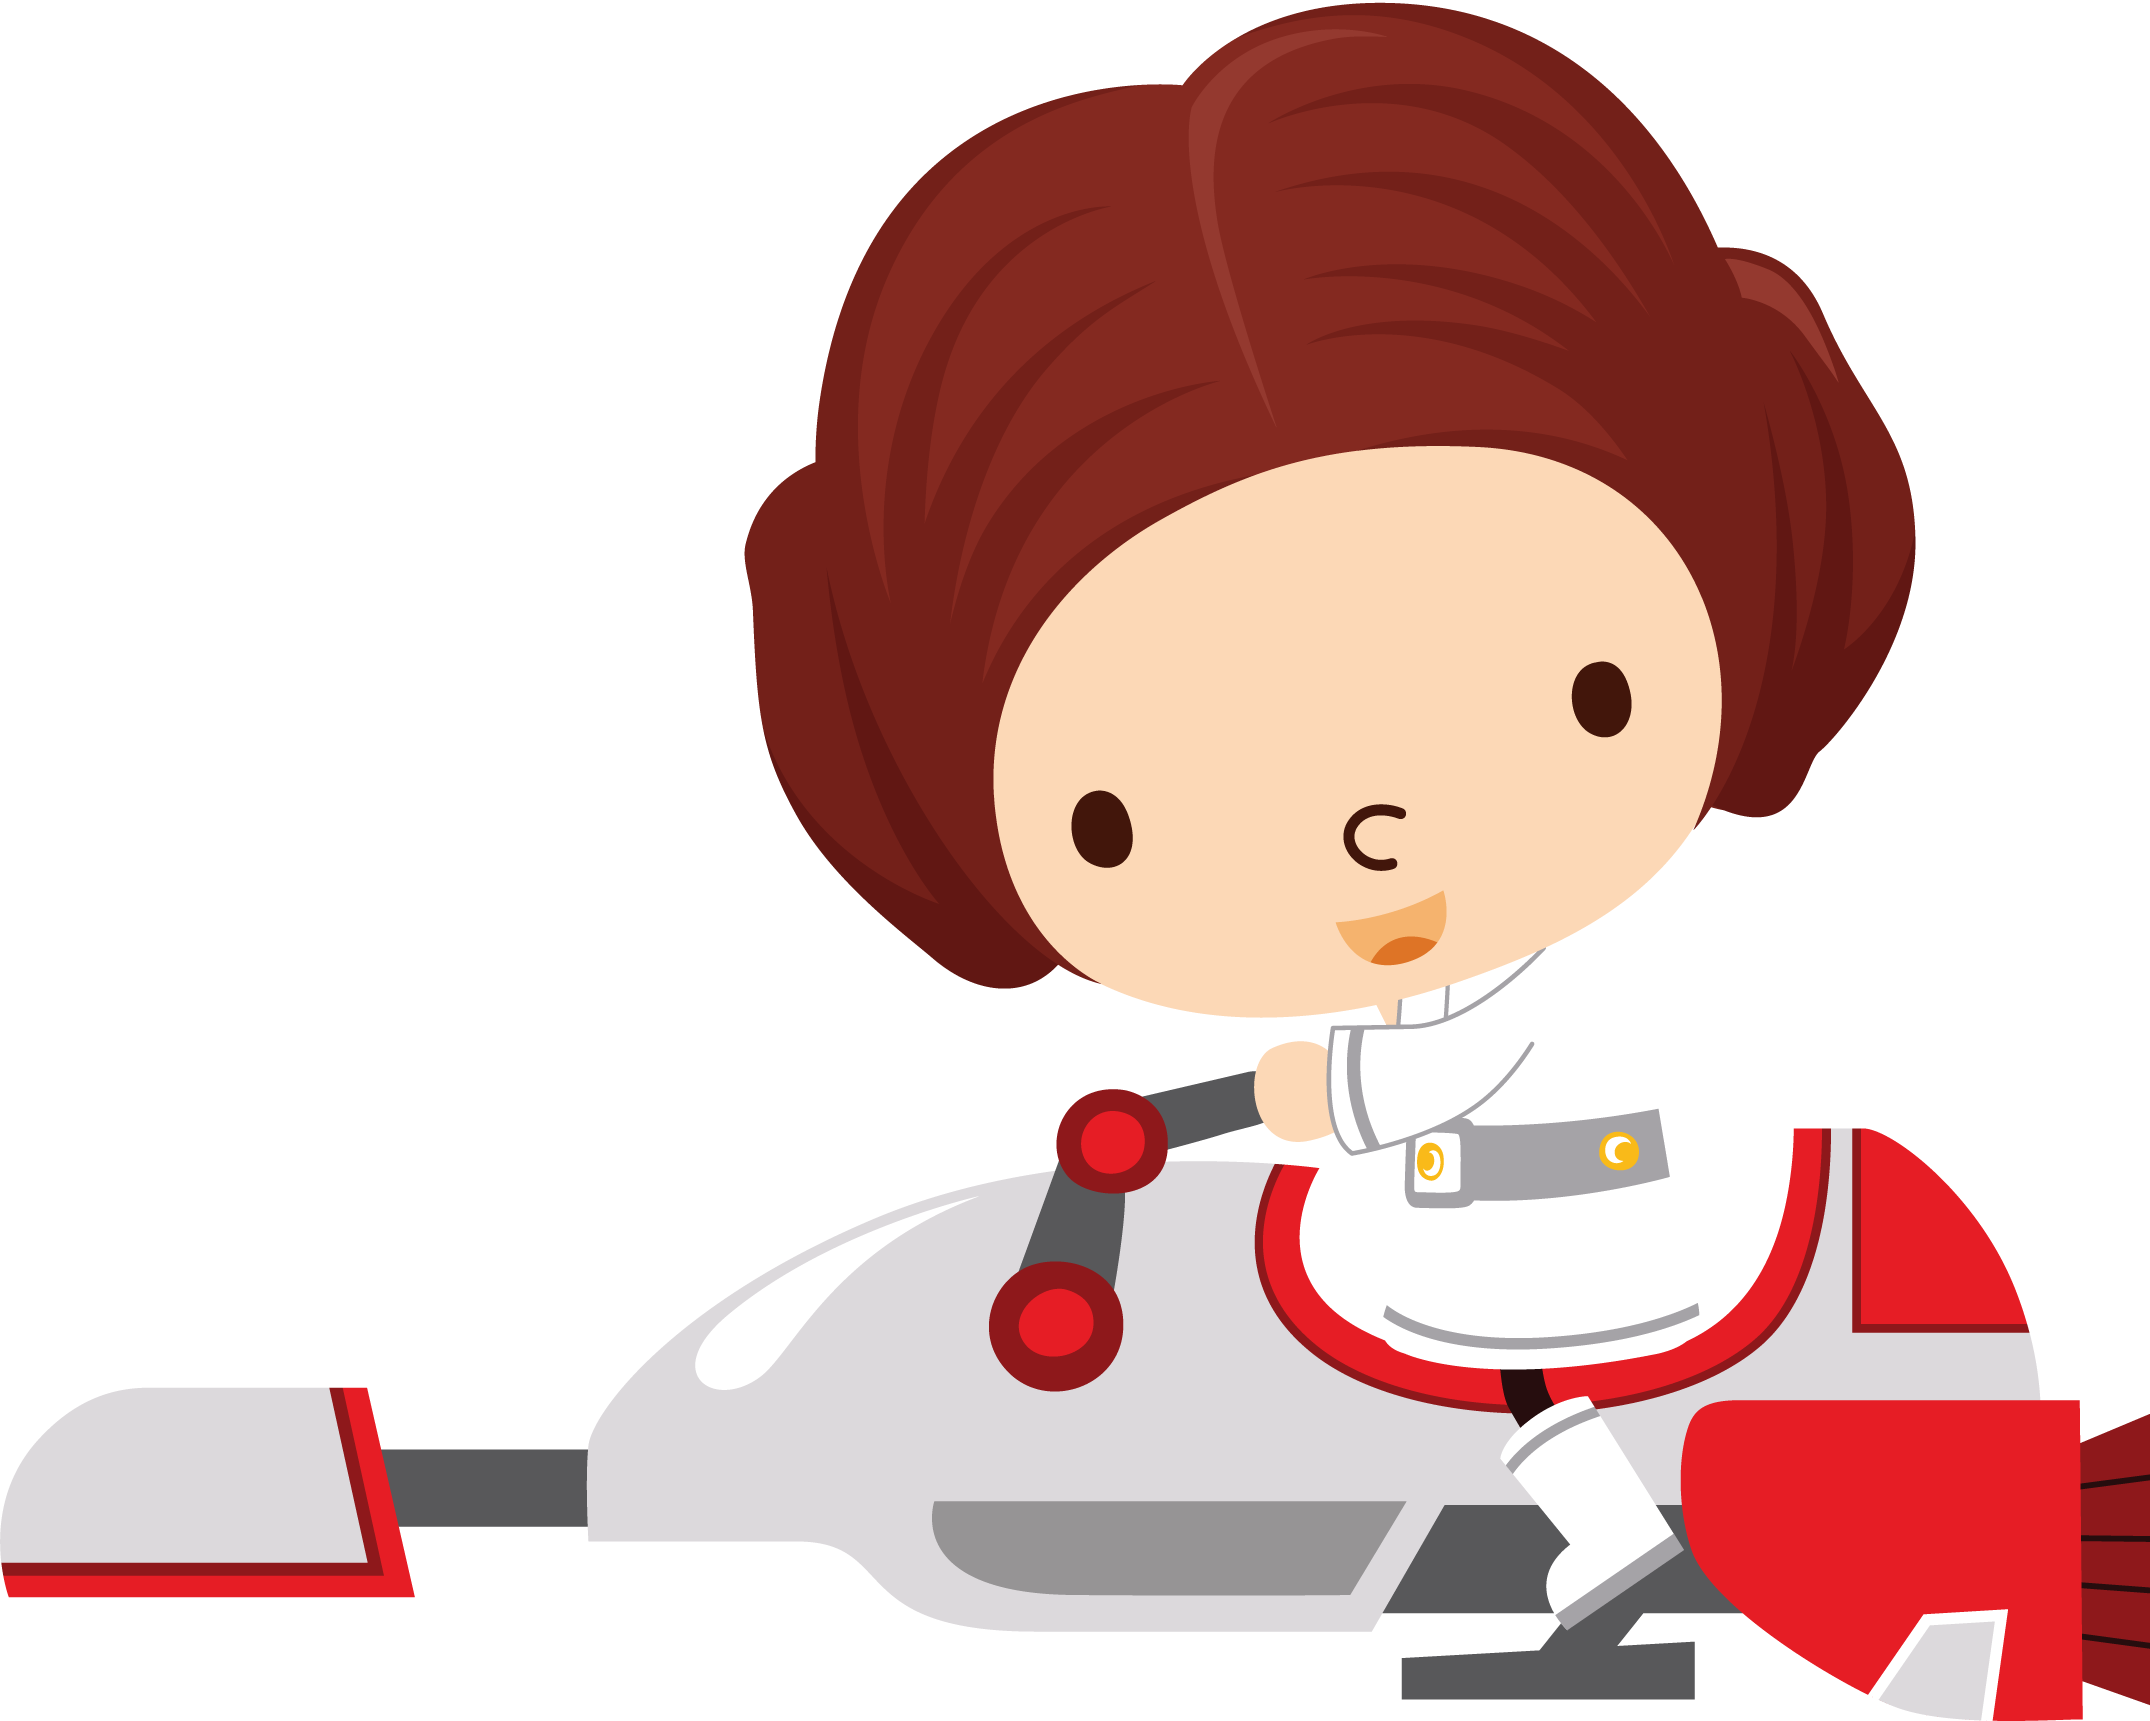 Star wars baby clipart image free stock Clone Wars Clipart at GetDrawings.com | Free for personal use Clone ... image free stock